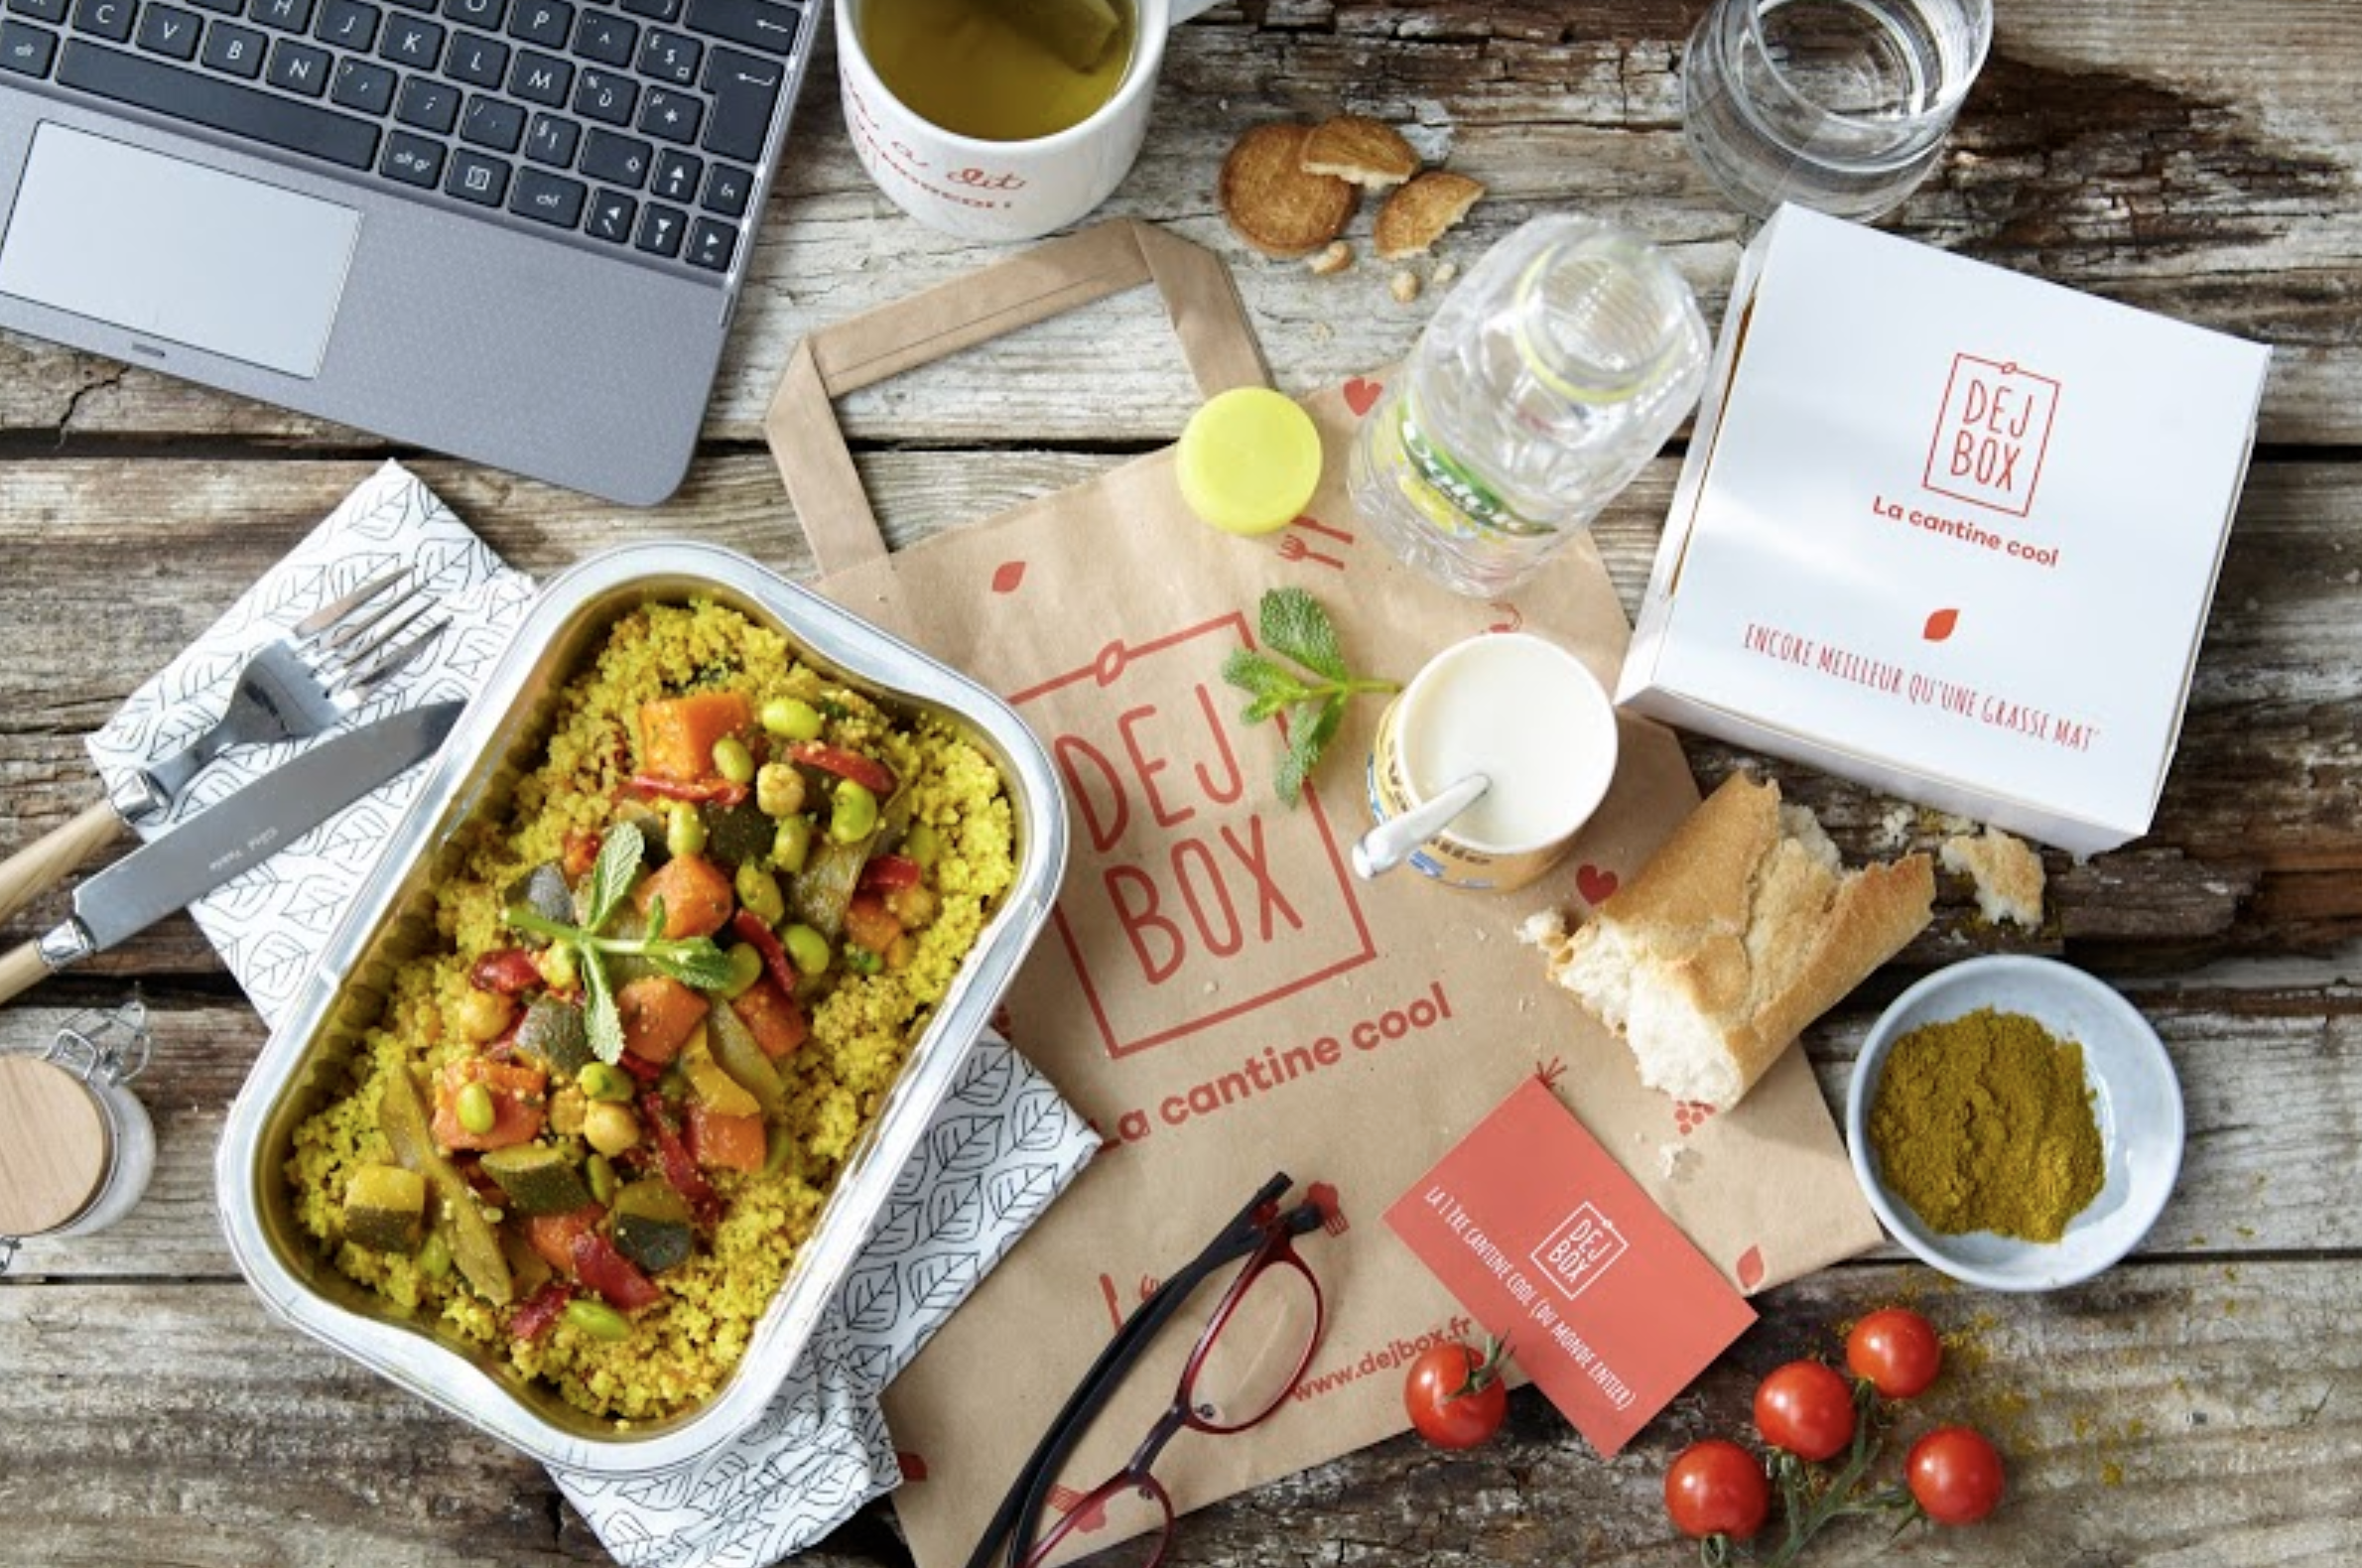 Dejbox Wants To Deliver Food To Offices In Business Districts At